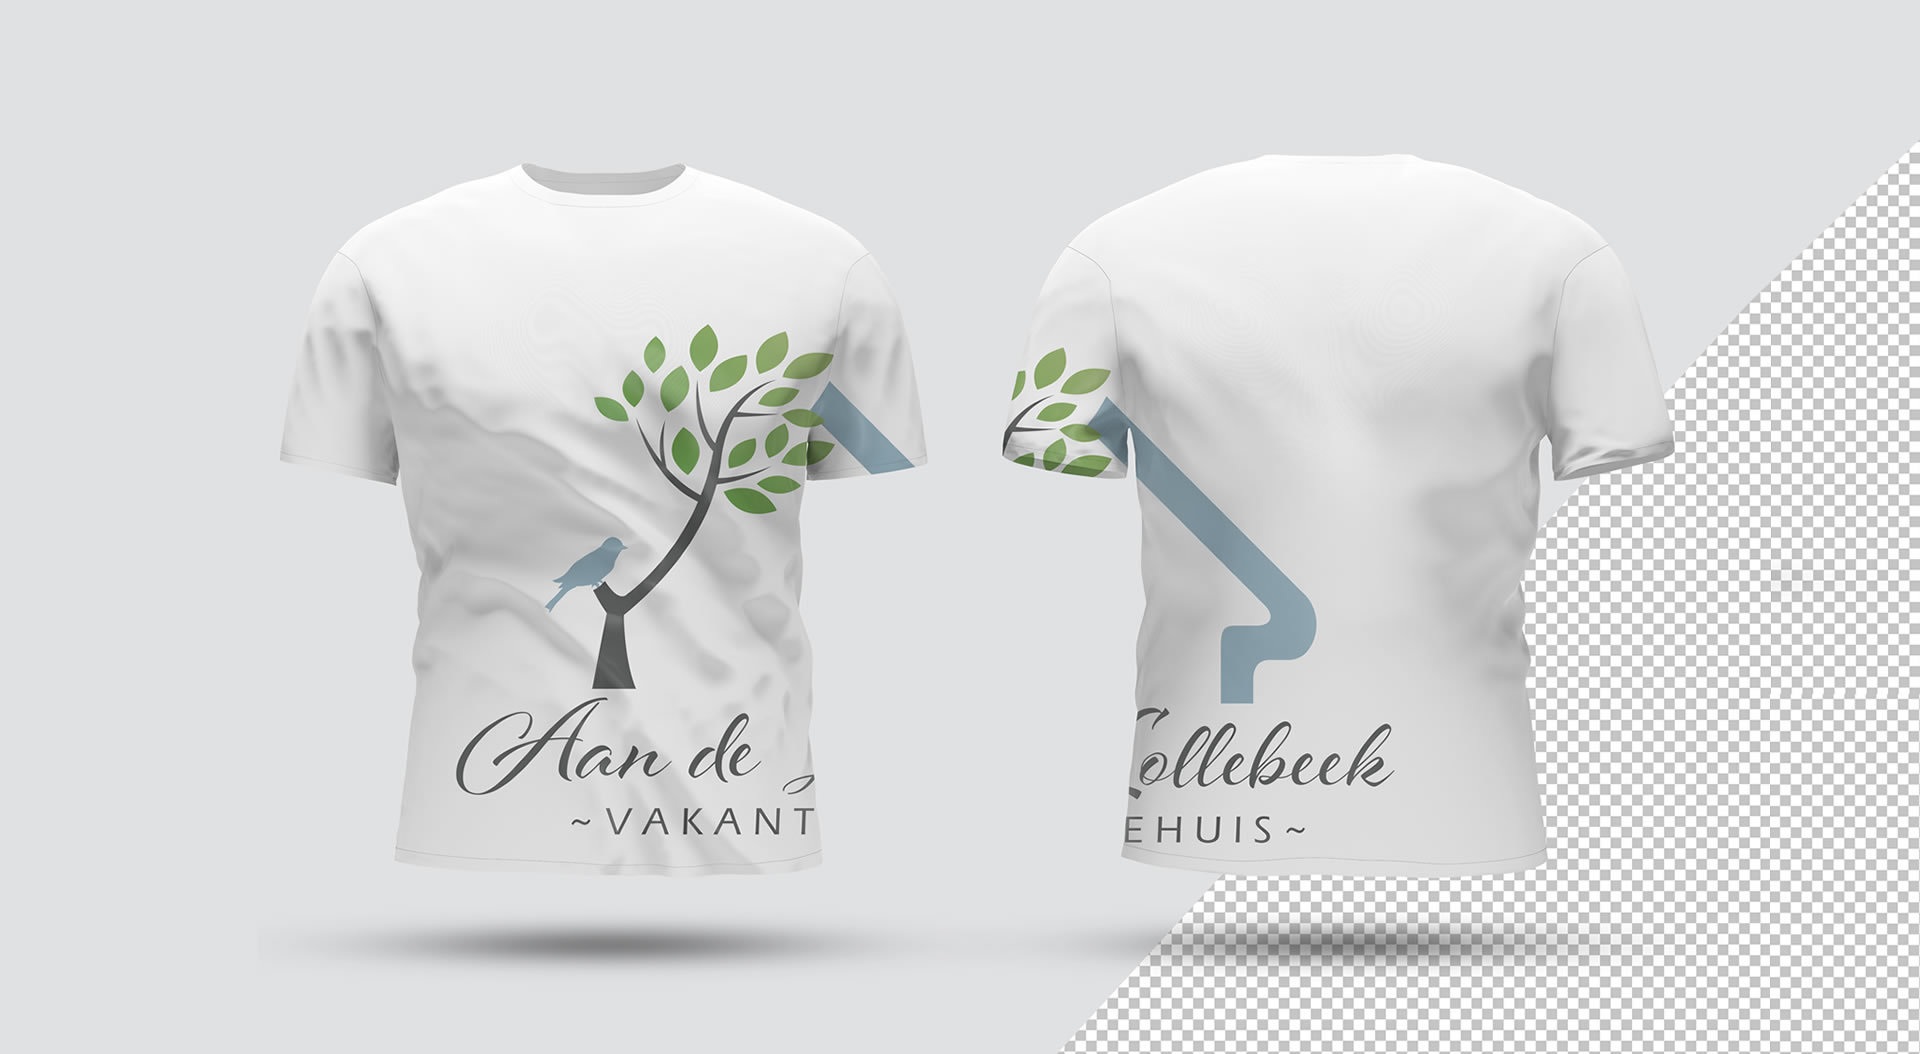 sense art photography tshirt kleding